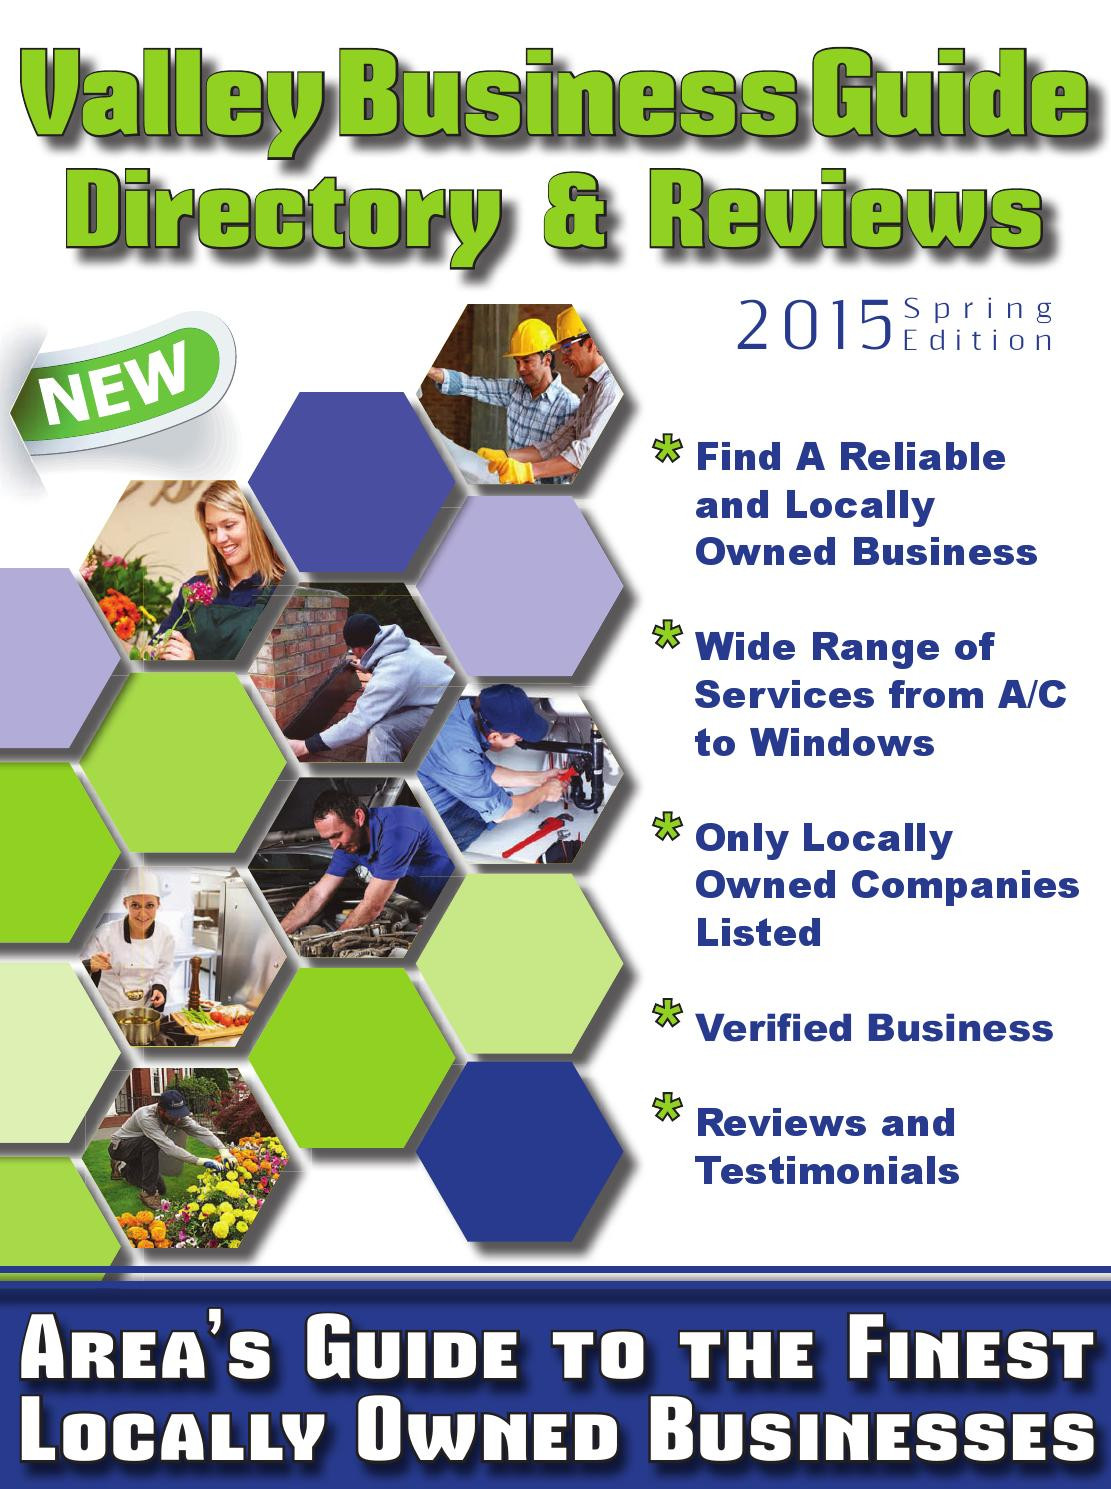 lw mountain hardwood flooring reviews of valley business guide directory review by mason marketing group throughout valley business guide directory review by mason marketing group issuu